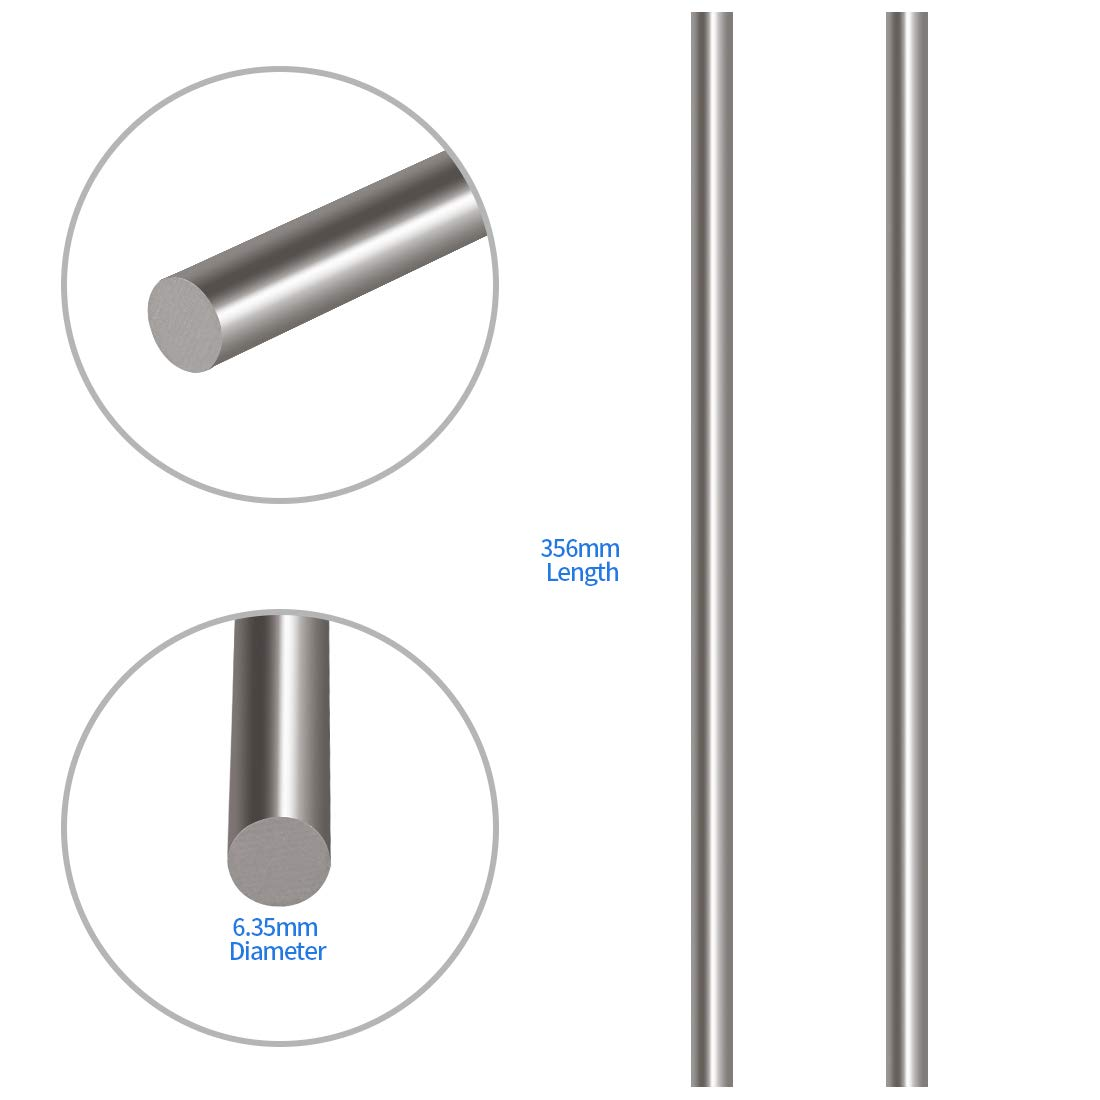 Model Ship RC Helicopter Airplane Glarks 2Pcs 6.35mm x 356mm Stainless Steel Straight Solid Metal Round Rod Lathe Bar Stock for DIY RC Model Car 6.35mmx356